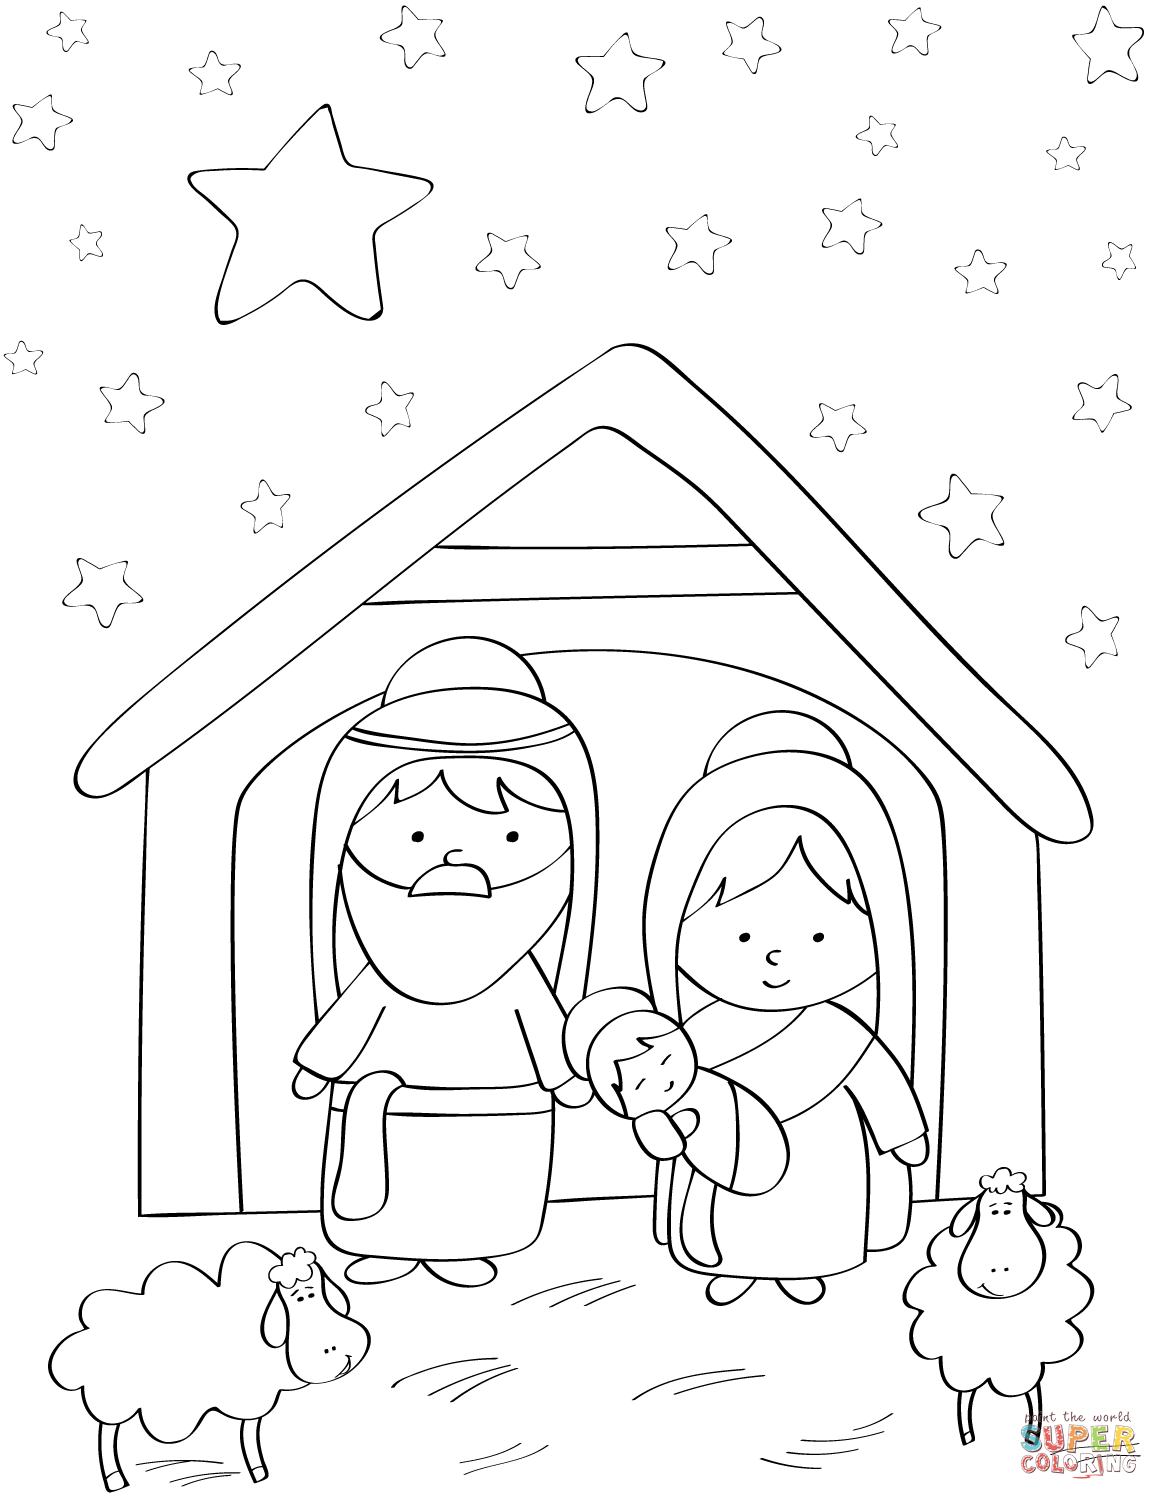 mary joseph and baby jesus coloring page find the best coloring pages resources here part 4 baby page mary jesus joseph and coloring